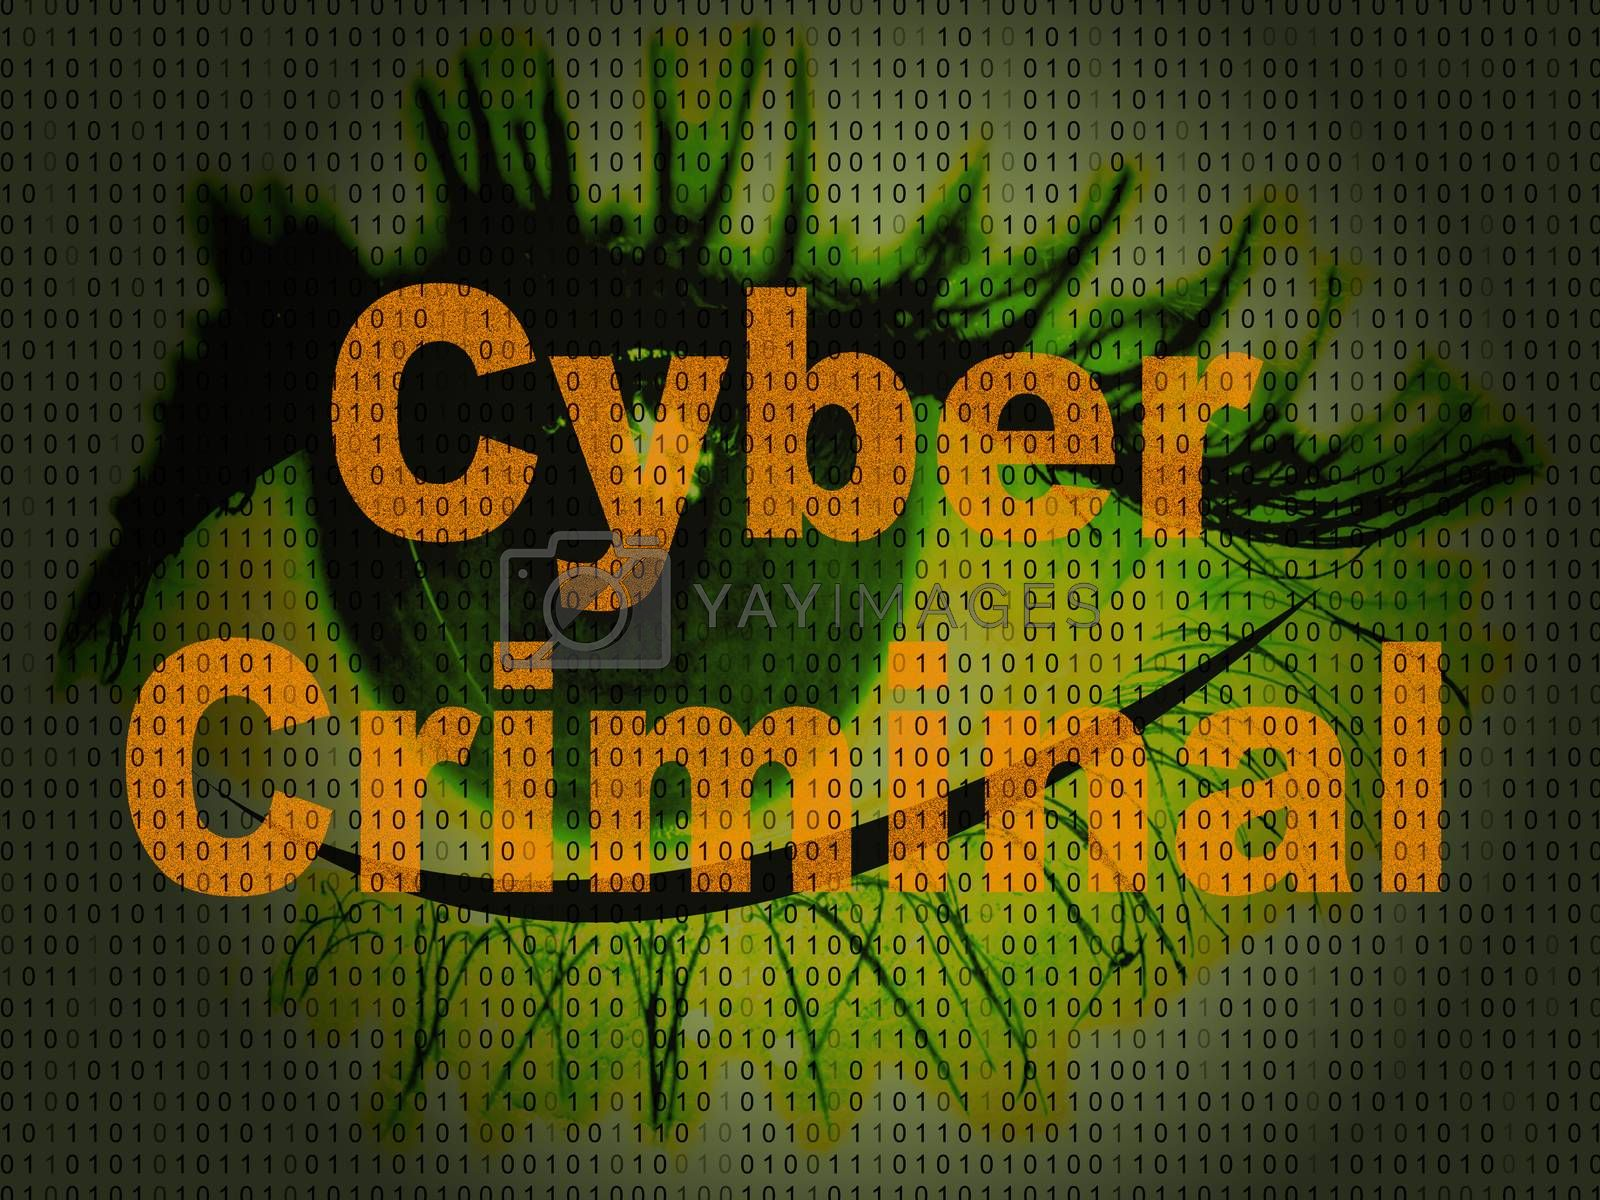 Cybercriminal Internet Hack Or Breach 2d Illustration by stuartmiles